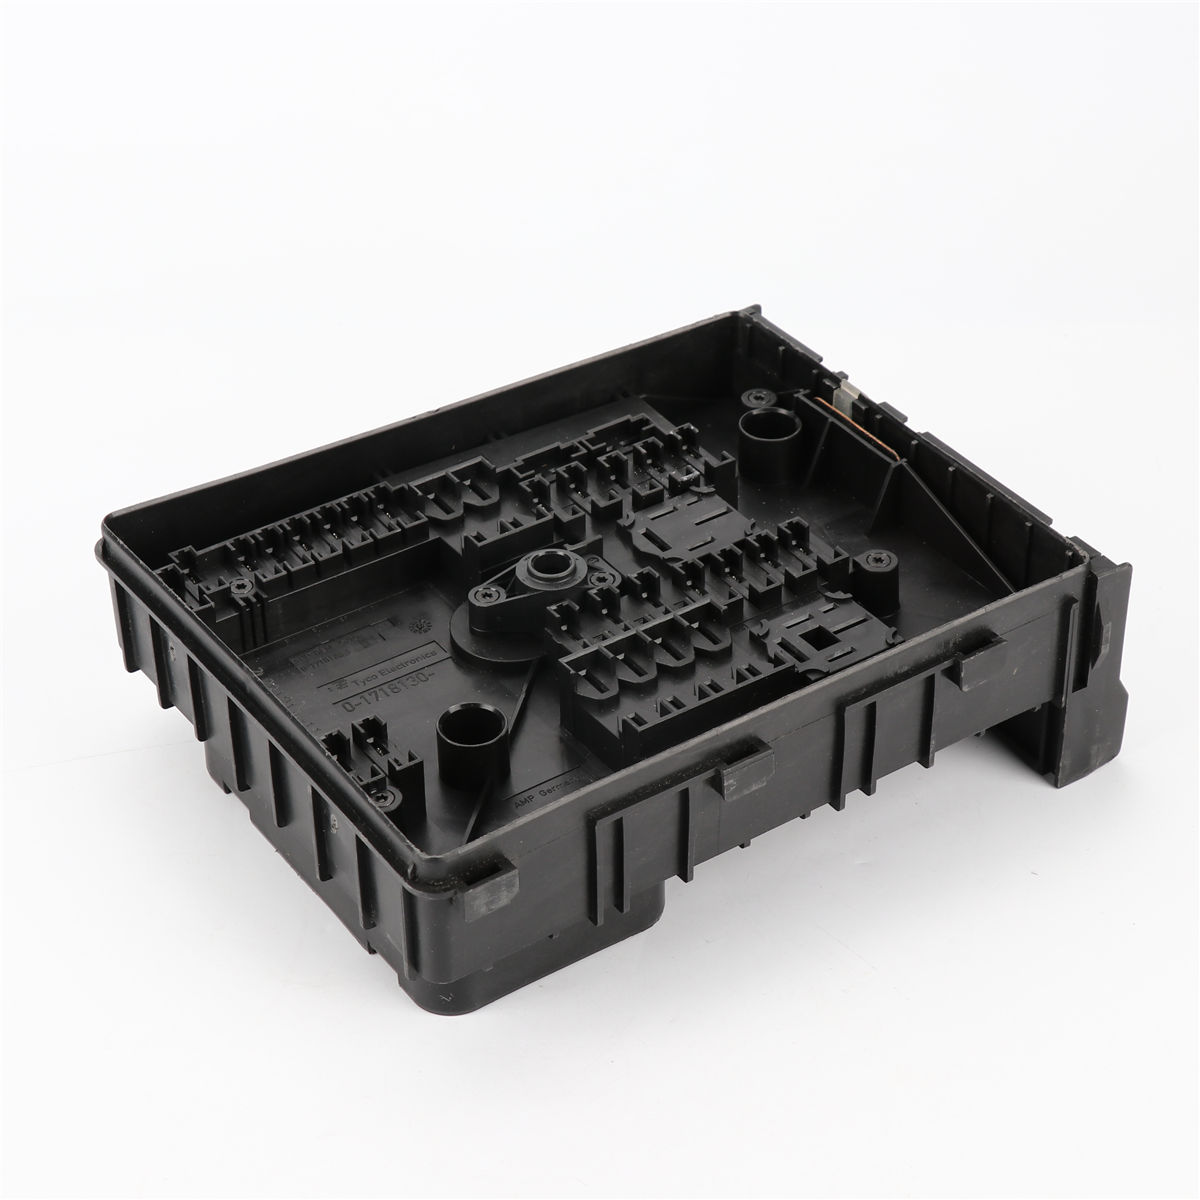 hight resolution of 1pcs relay fuse box board for vw jetta golf mk5 eos rabbit audi a3 seat skoda 1k0 937 125 d